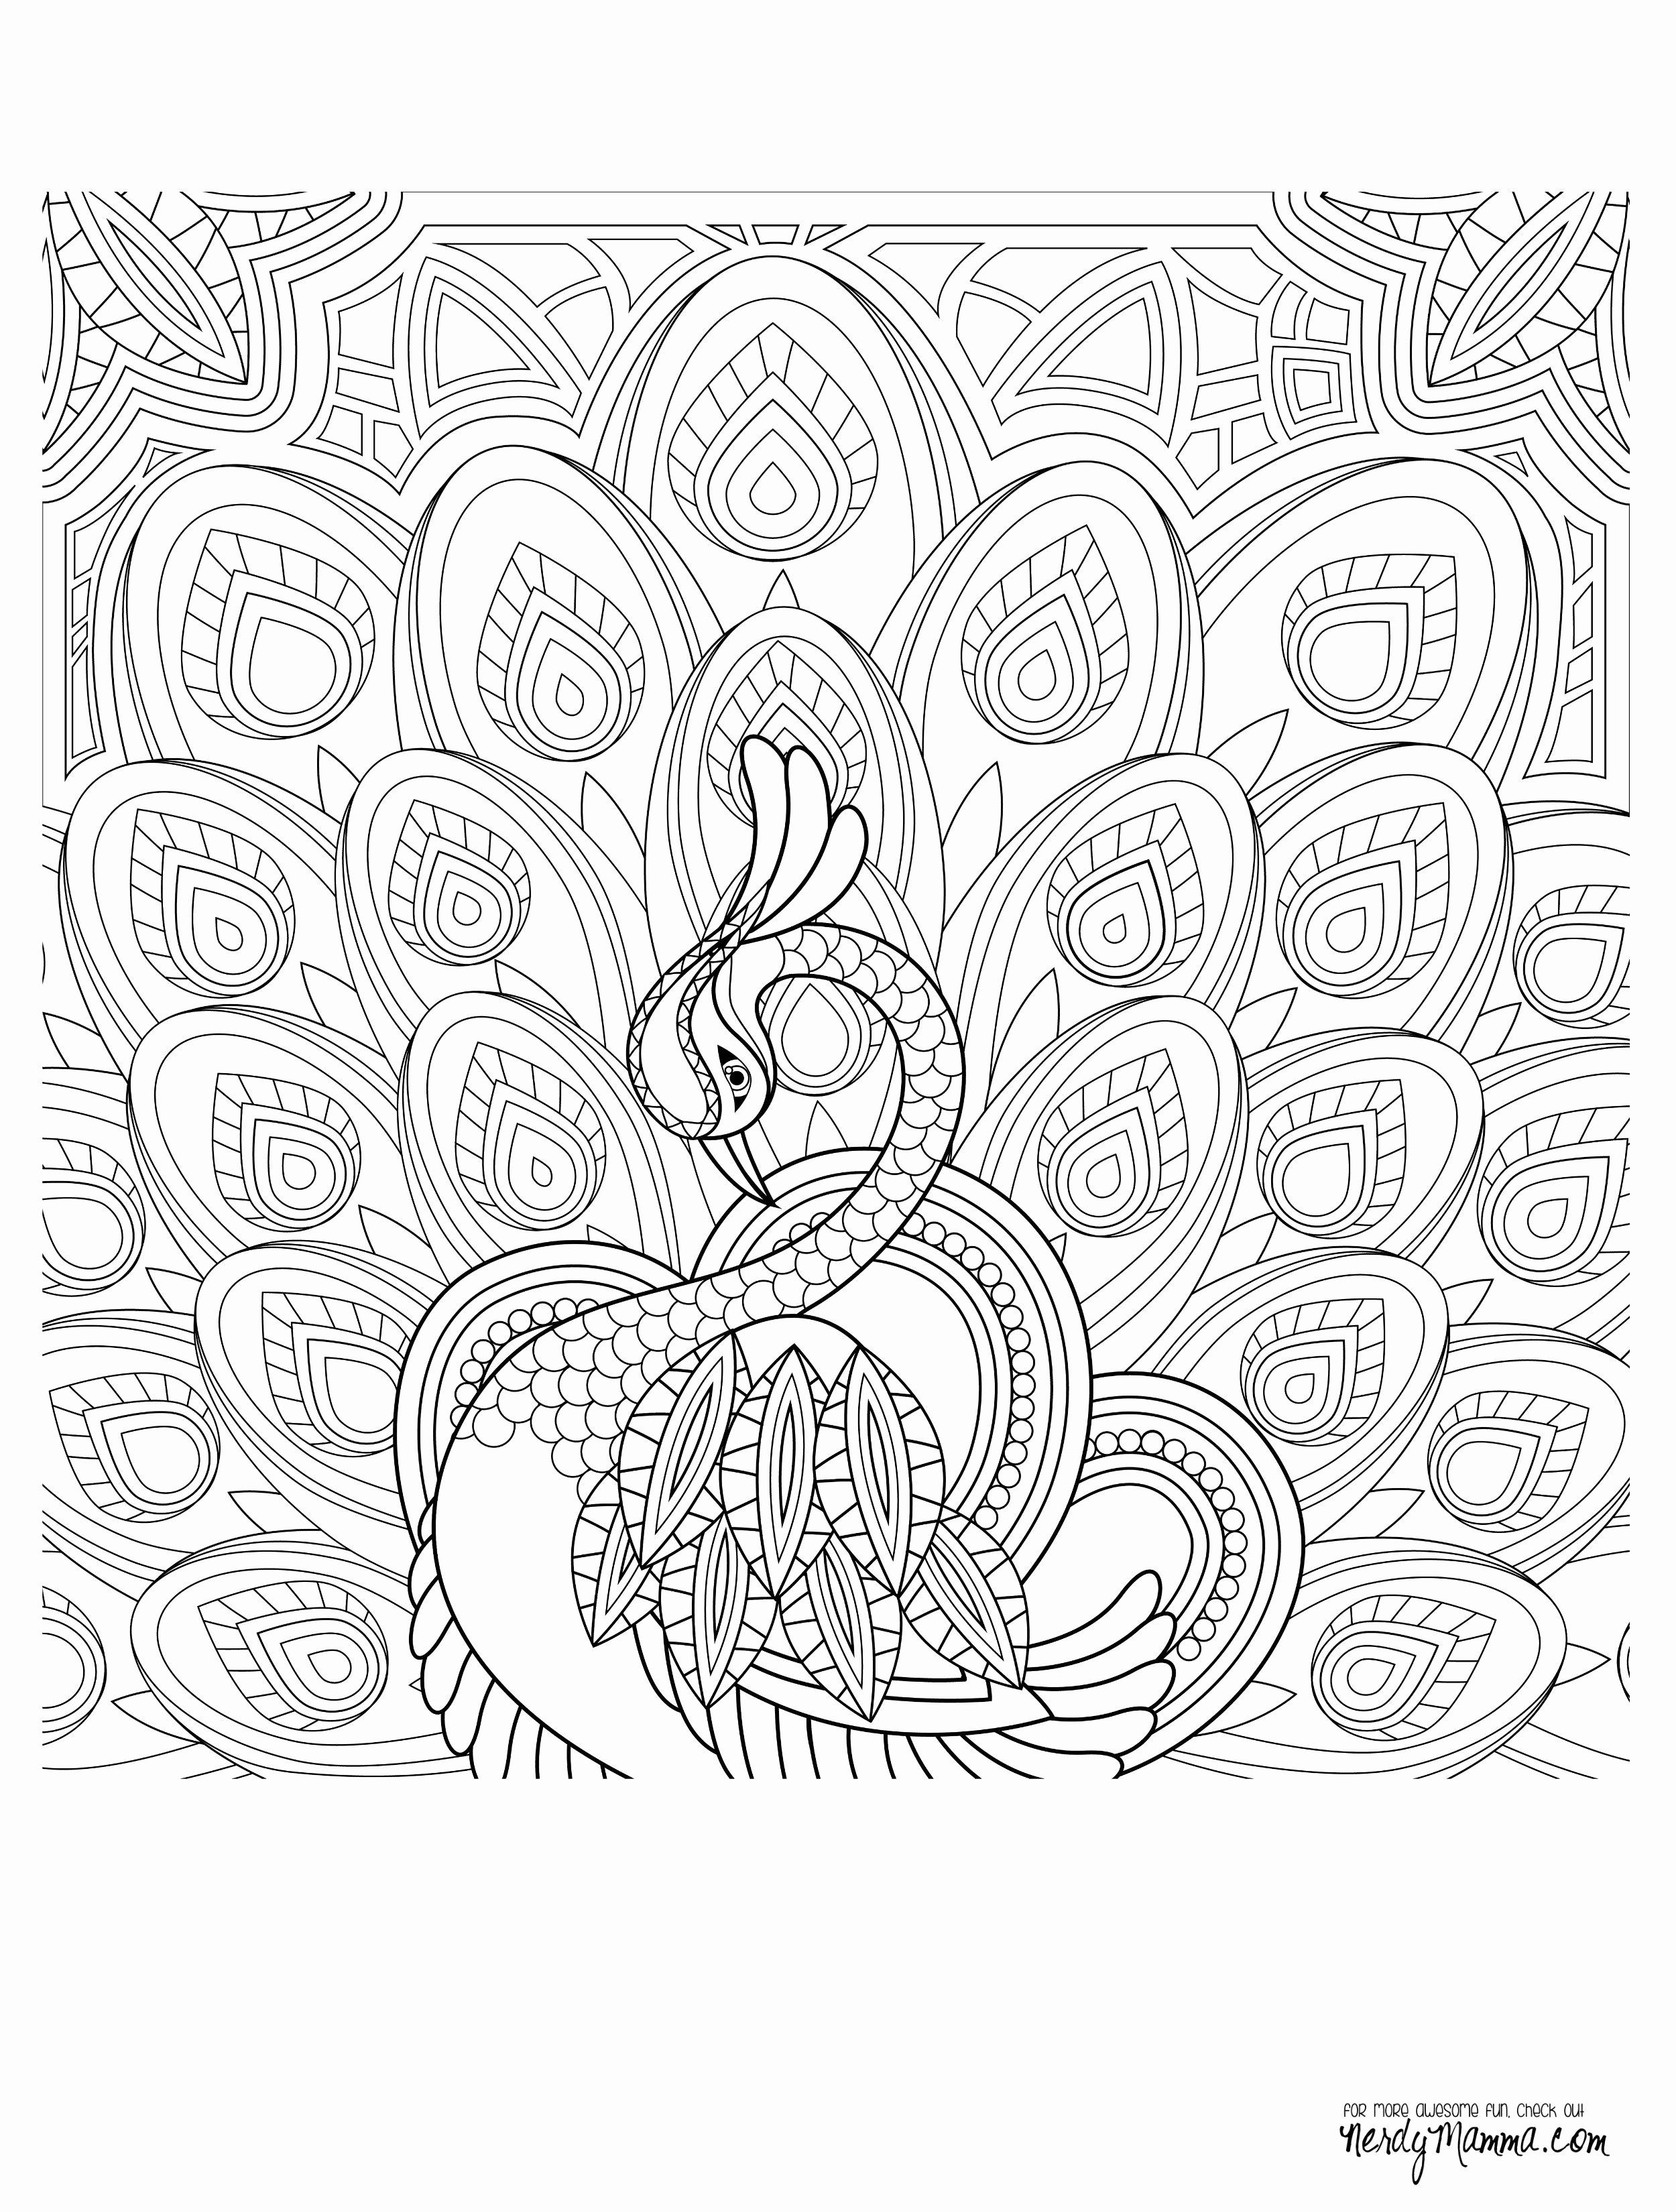 photograph regarding Free Printable Coloring Pages for Adults Mermaids called 19 Affordable Mermaid Coloring Webpages Obtain - Coloring Sheets